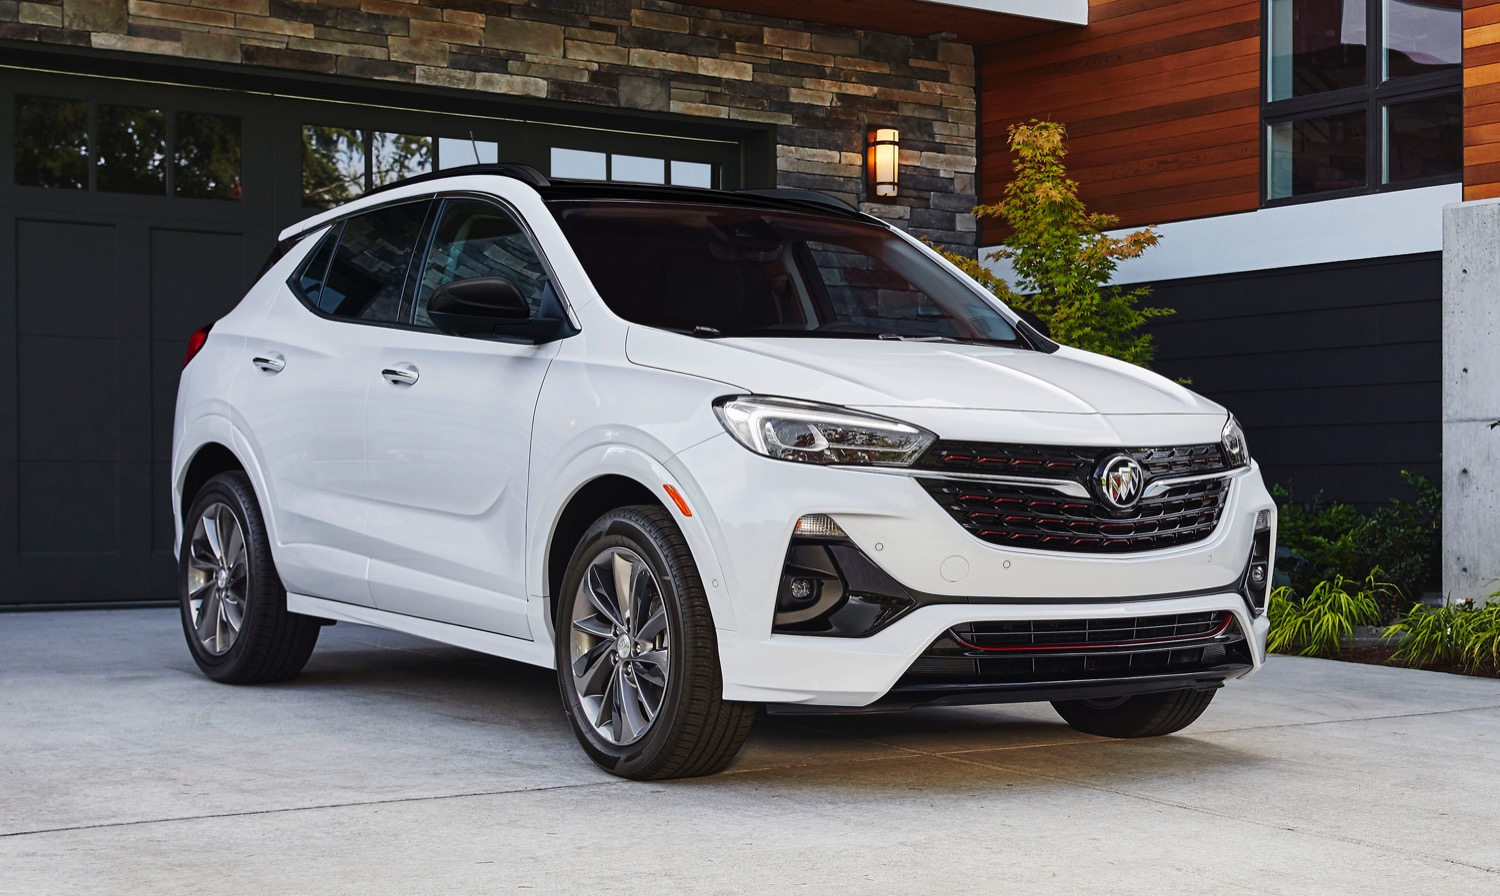 2020 Buick Encore Gx Vs. Buick Encore: Weight Comparison 2022 Buick Encore Essence Reviews, Specs, Configurations